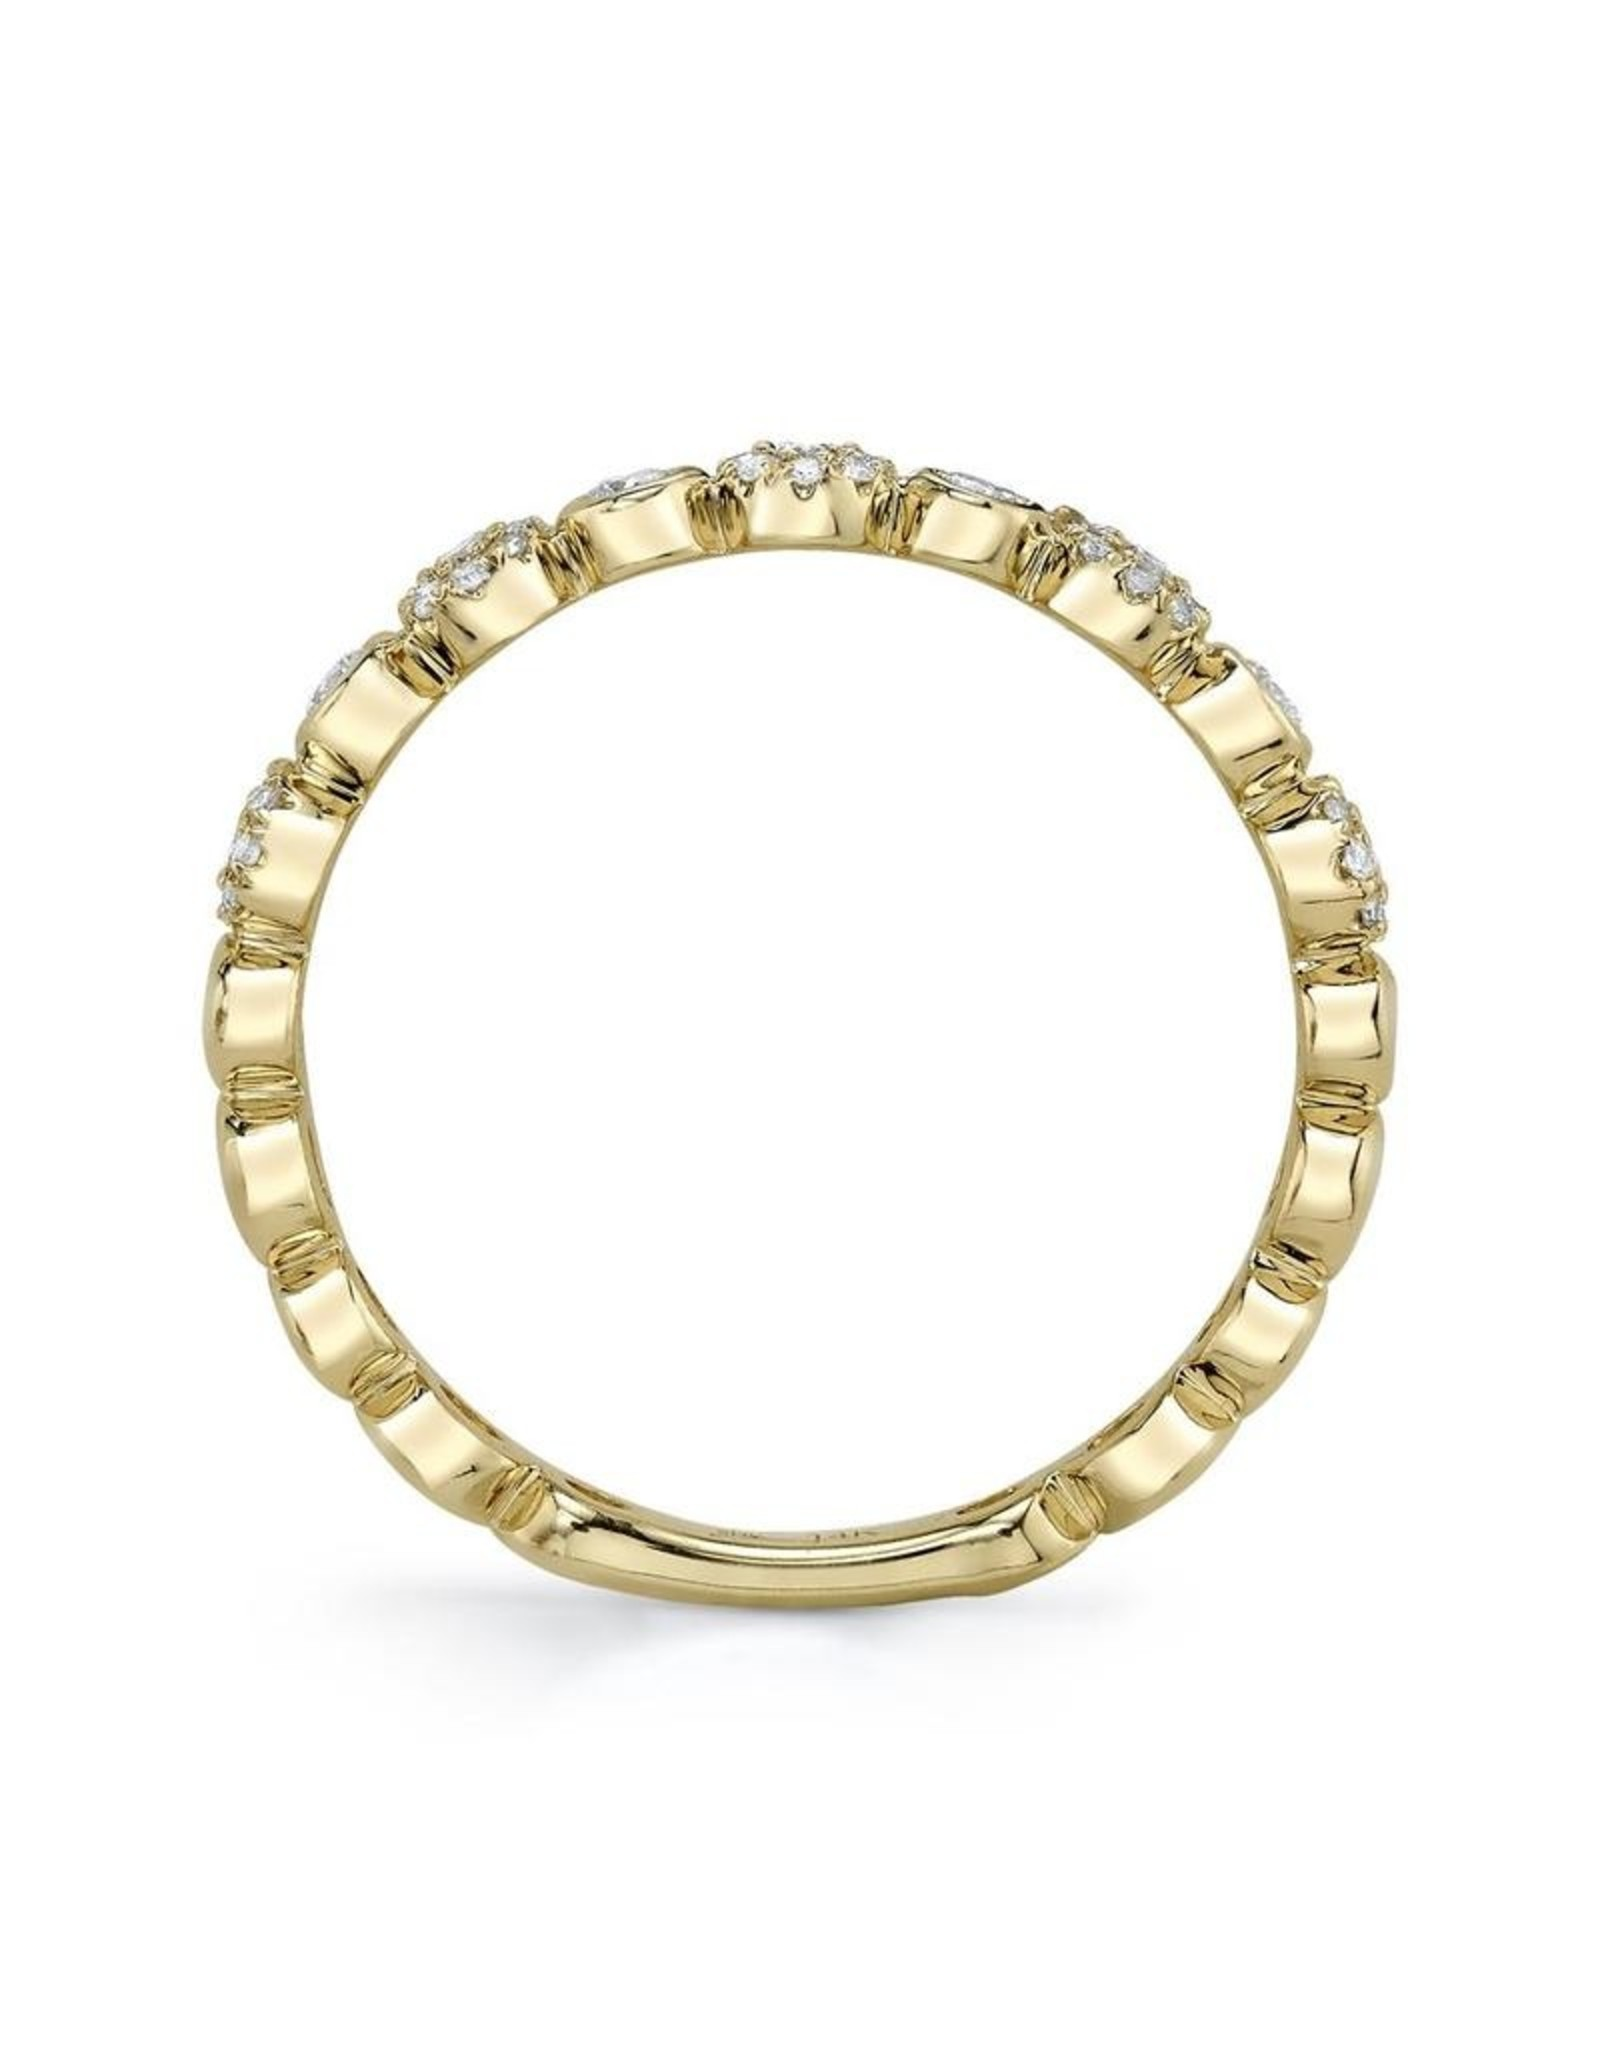 14K Yellow Gold Pave Diamond Stackable Ring, D: 0.22ct